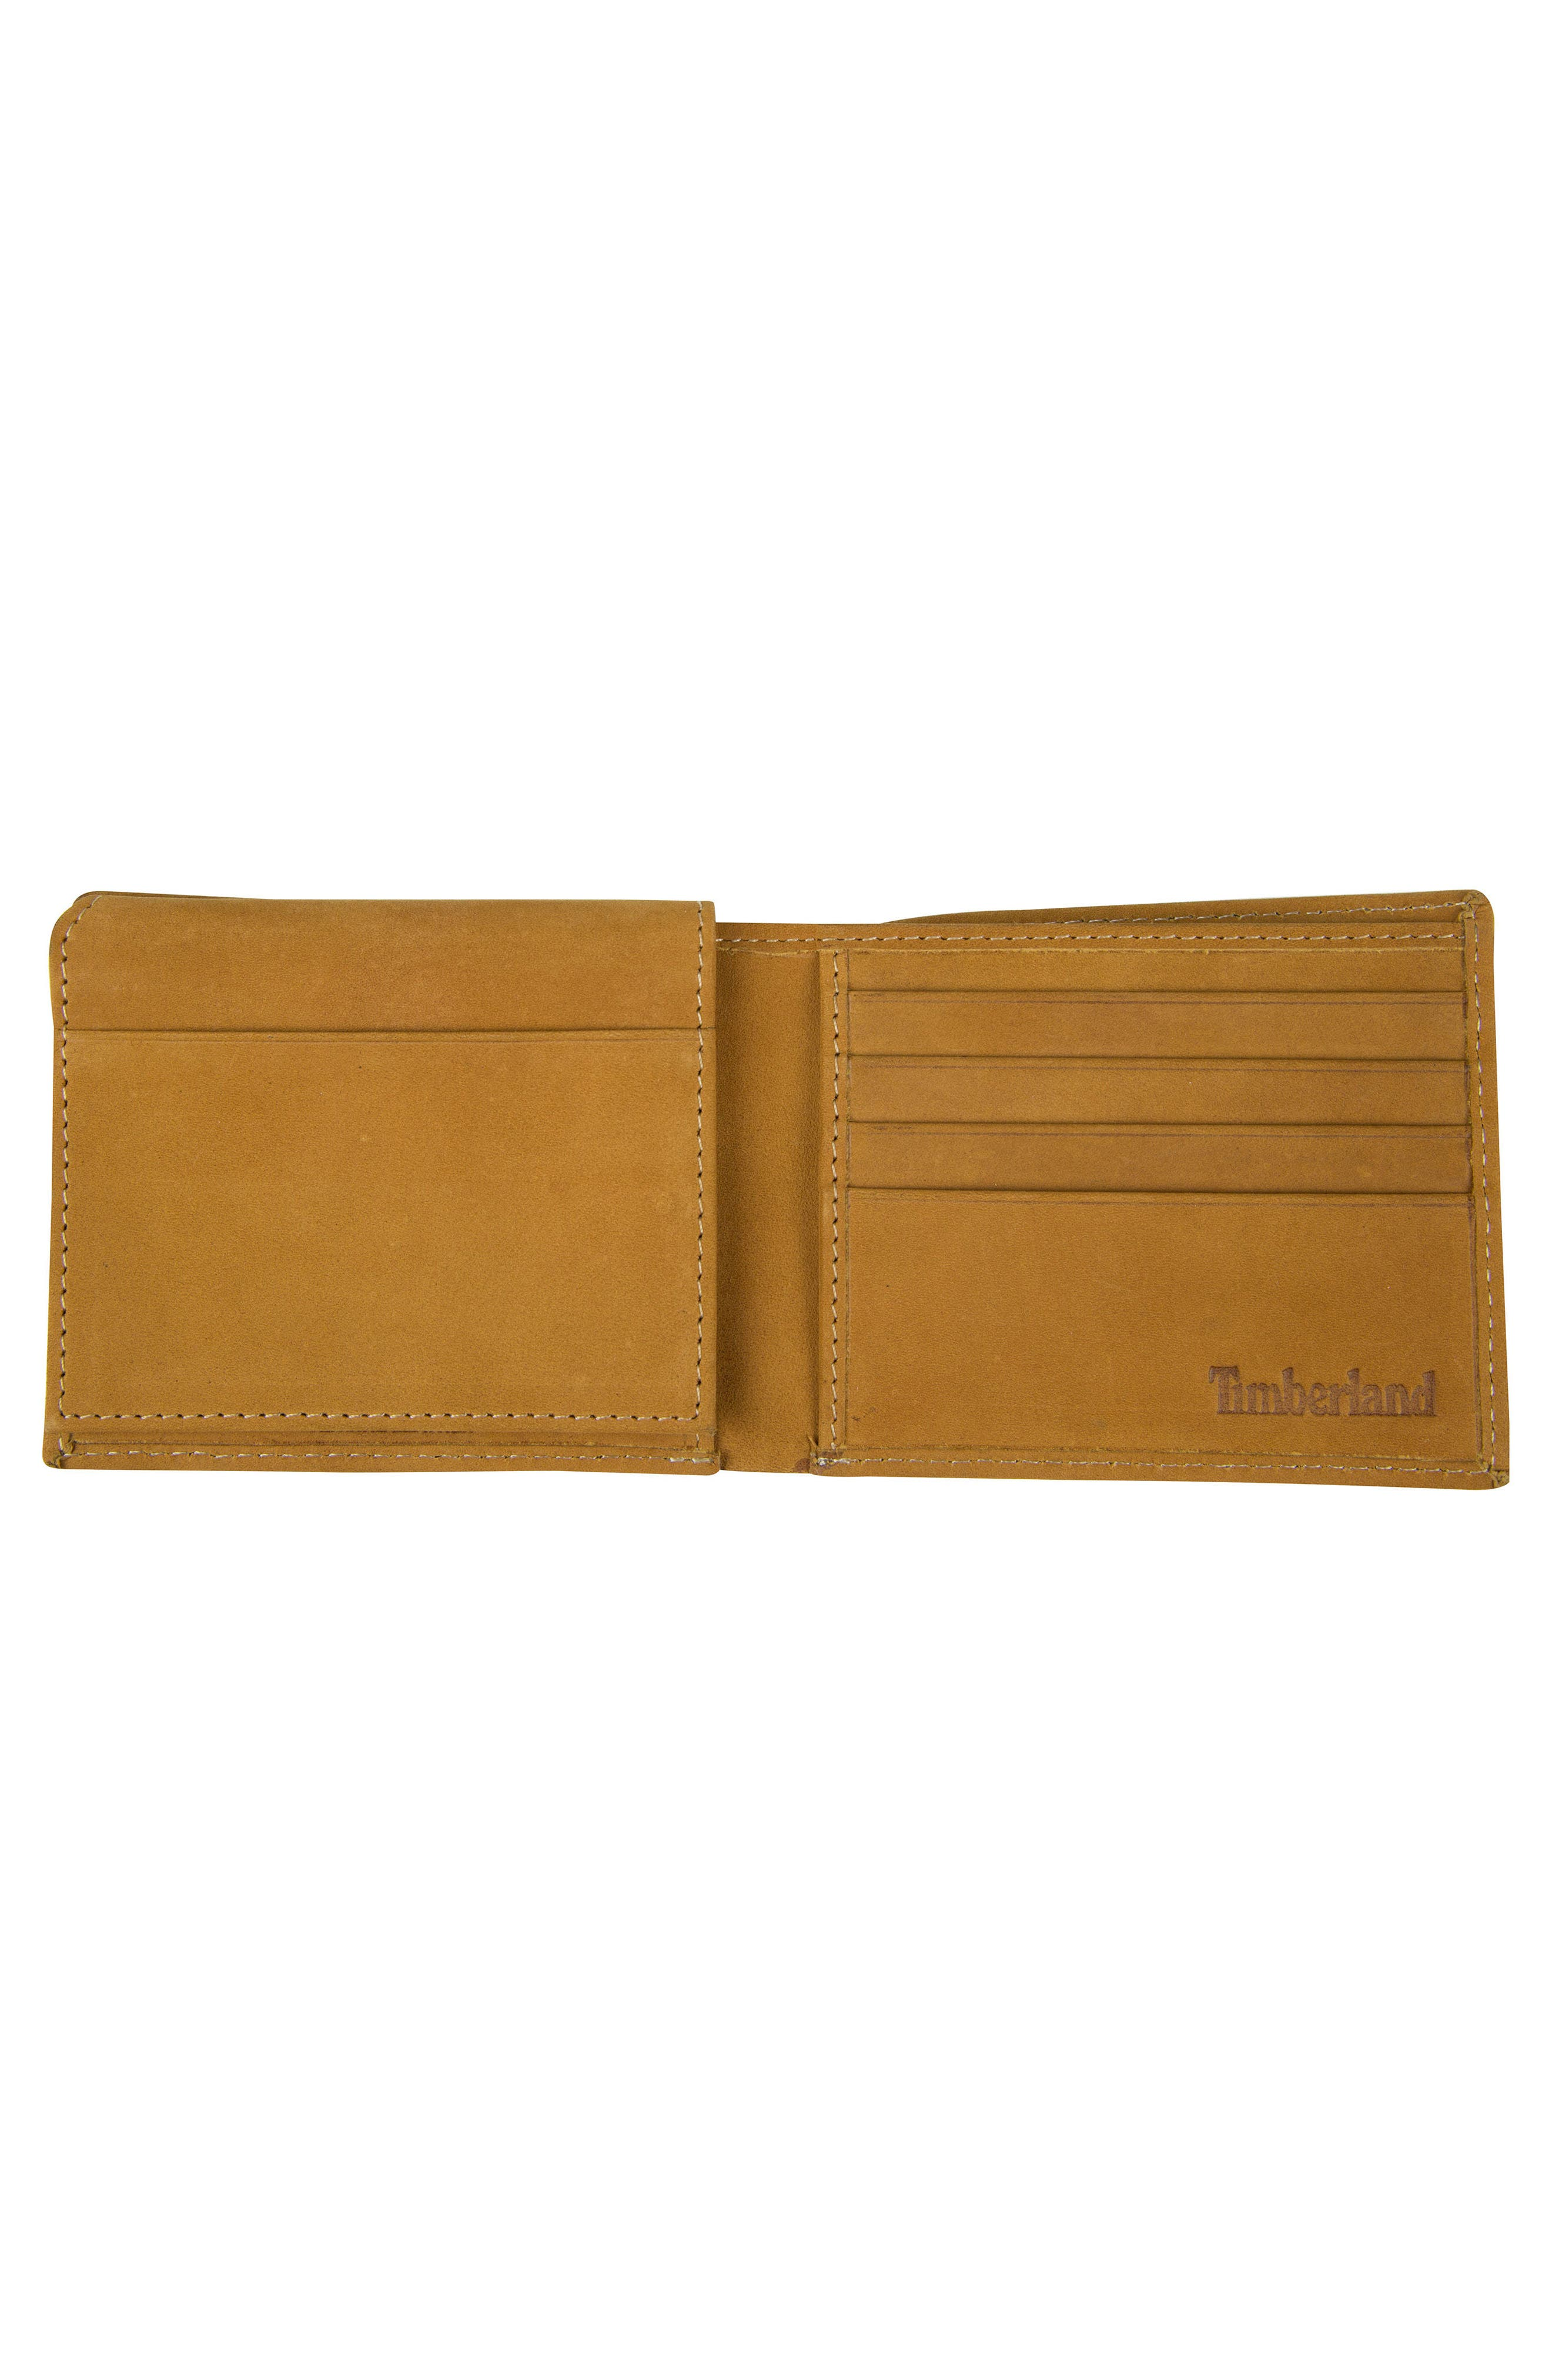 Icon Leather Wallet,                             Alternate thumbnail 2, color,                             WHEAT